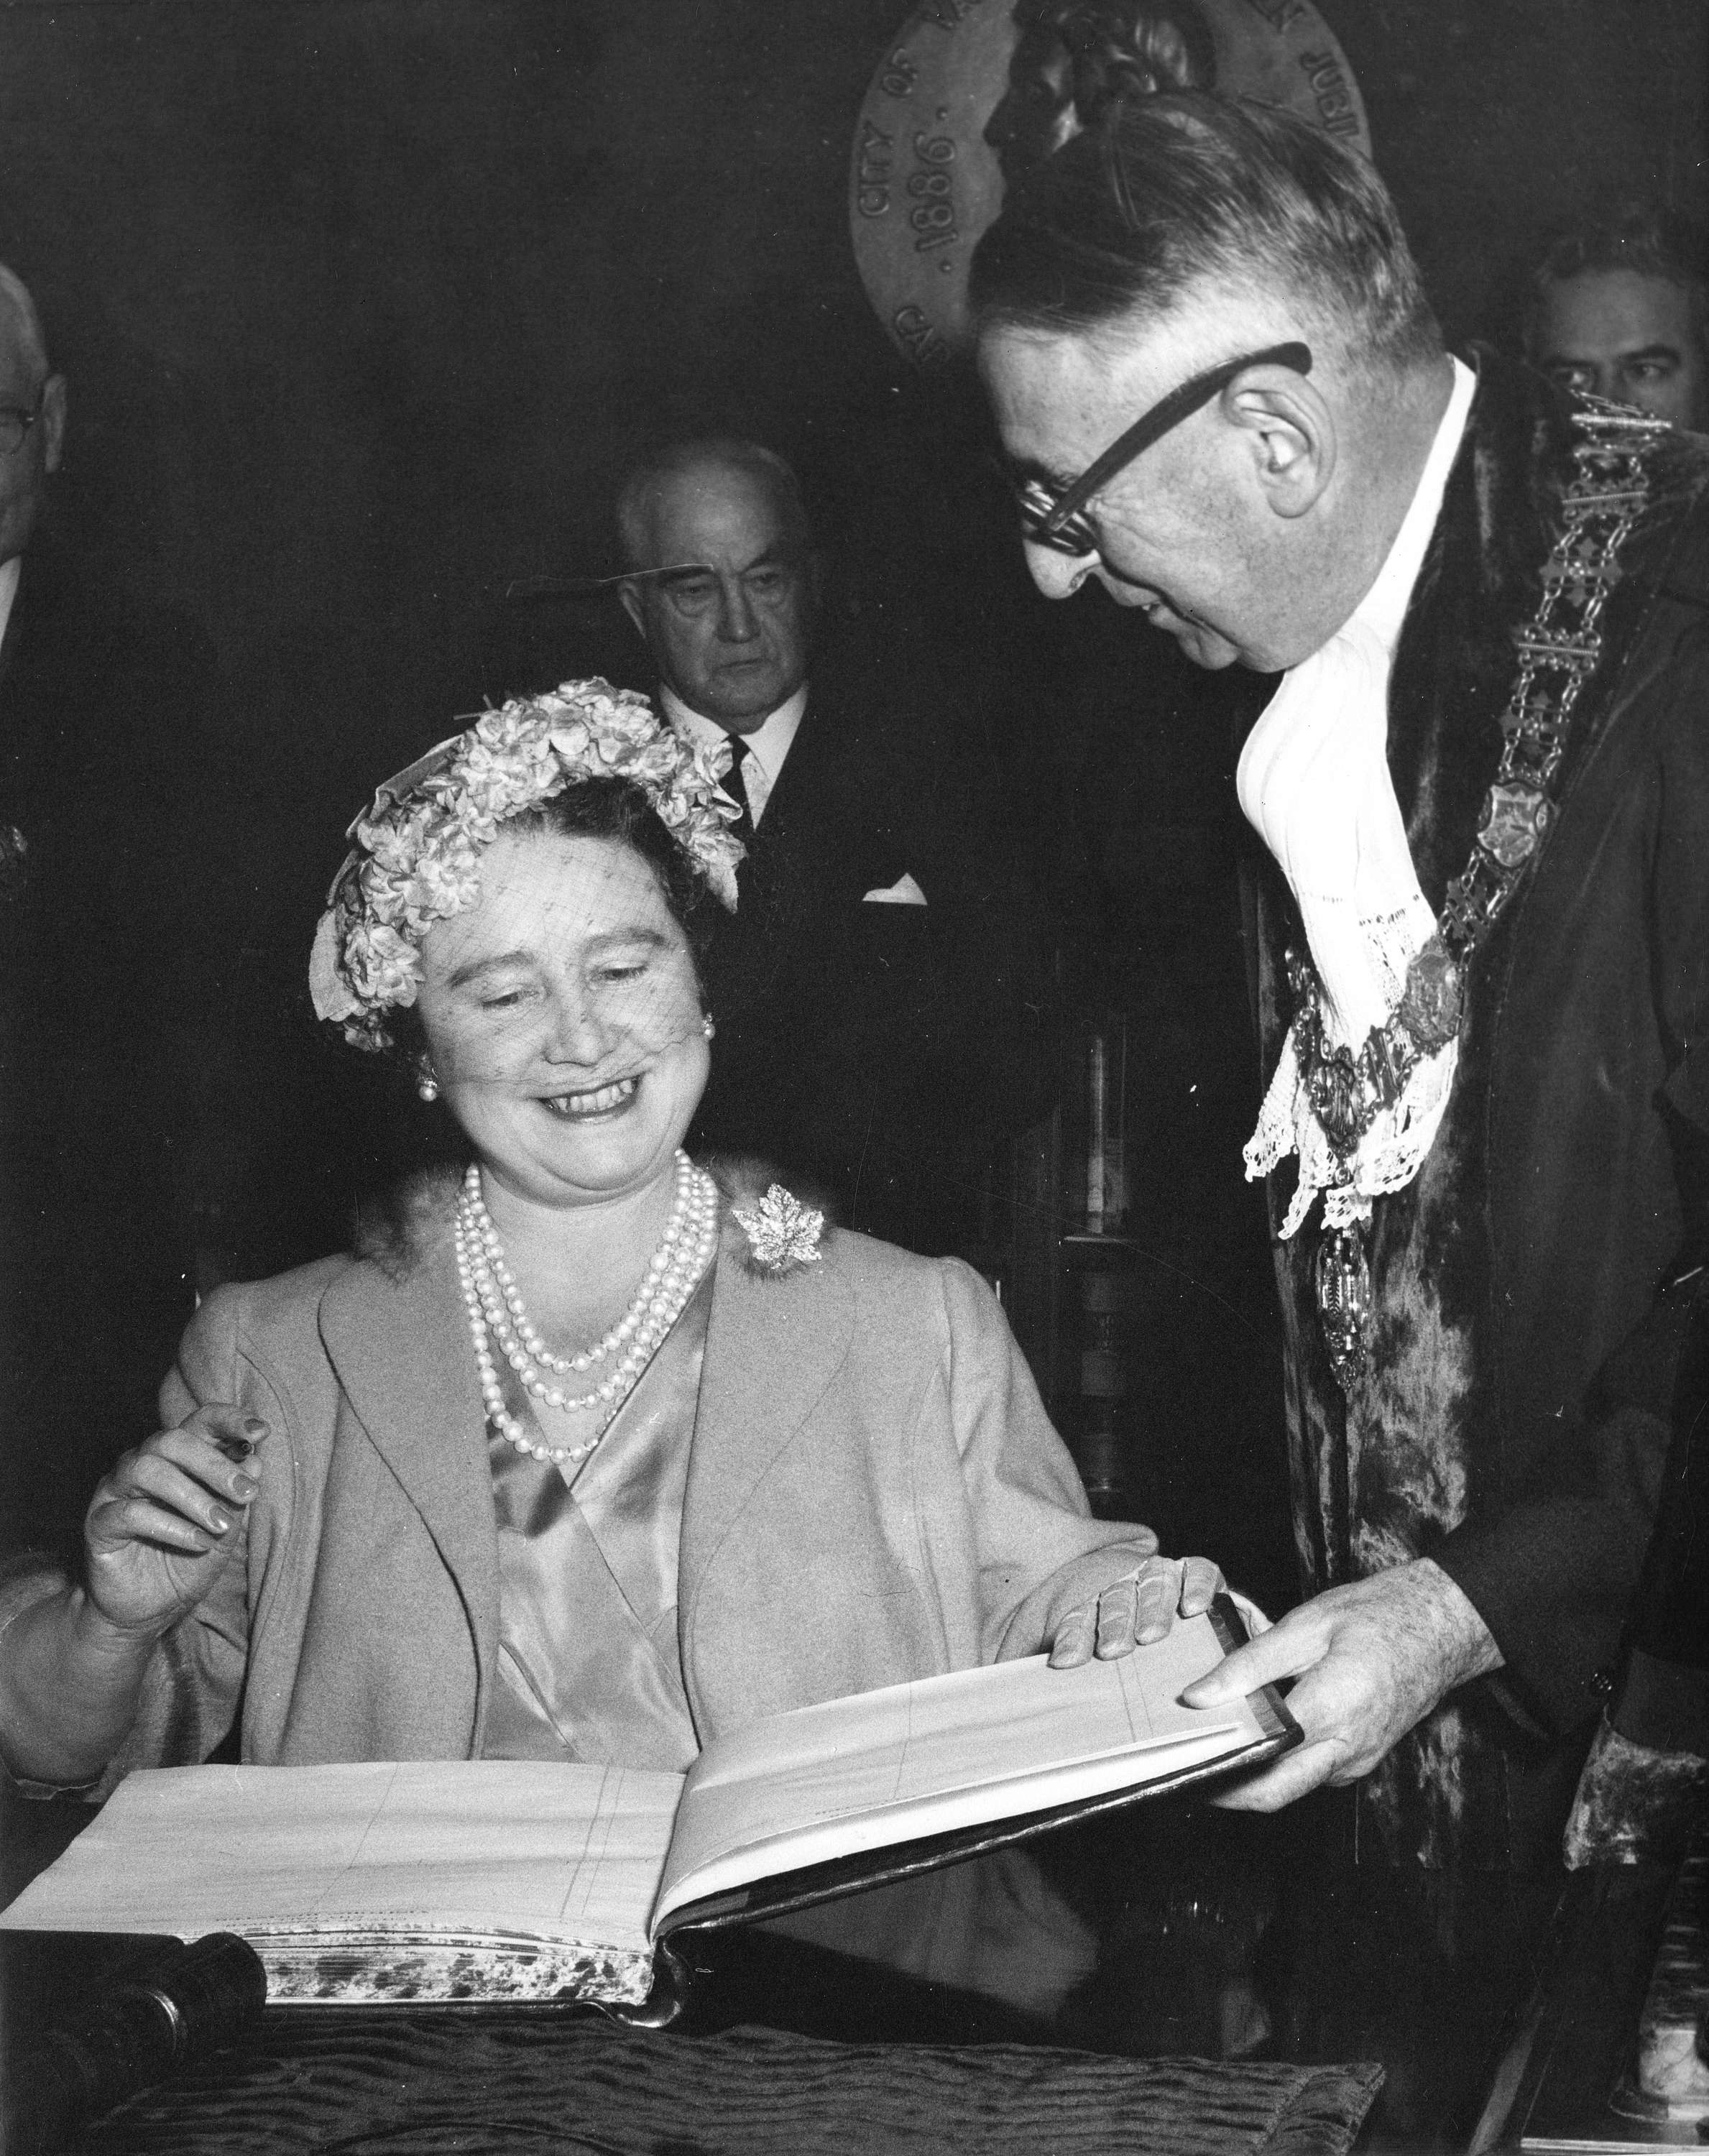 Queen Elizabeth the Queen Mother signs the guest book in the Mayor's office in Vancouver in 1958 (Public domain)